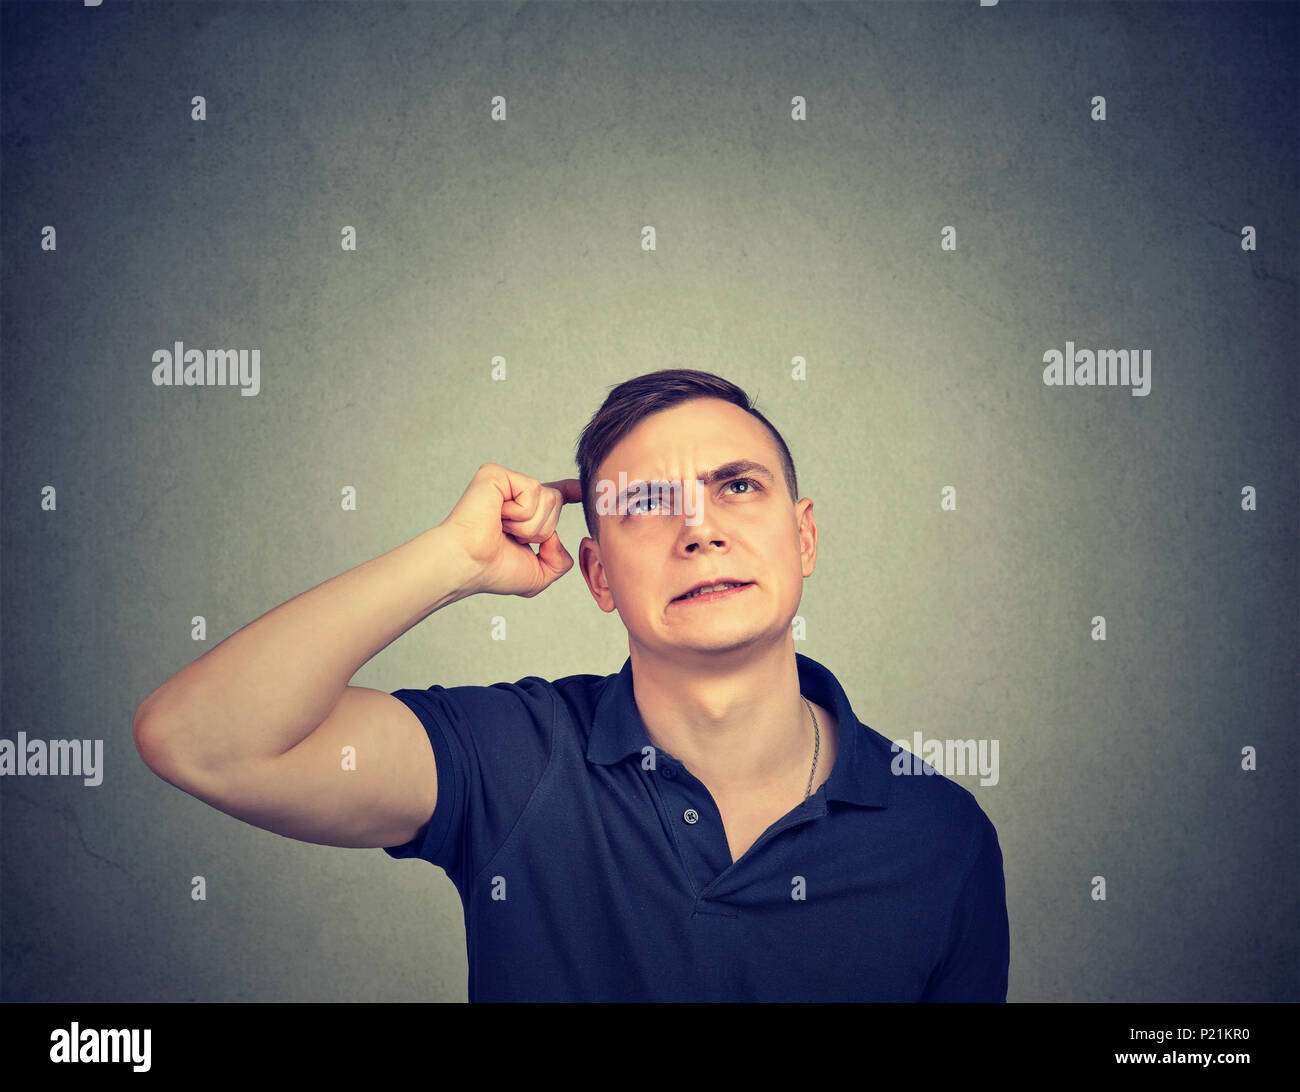 Closeup portrait man scratching head, thinking about something, looking up, isolated on gray wall background. - Stock Image